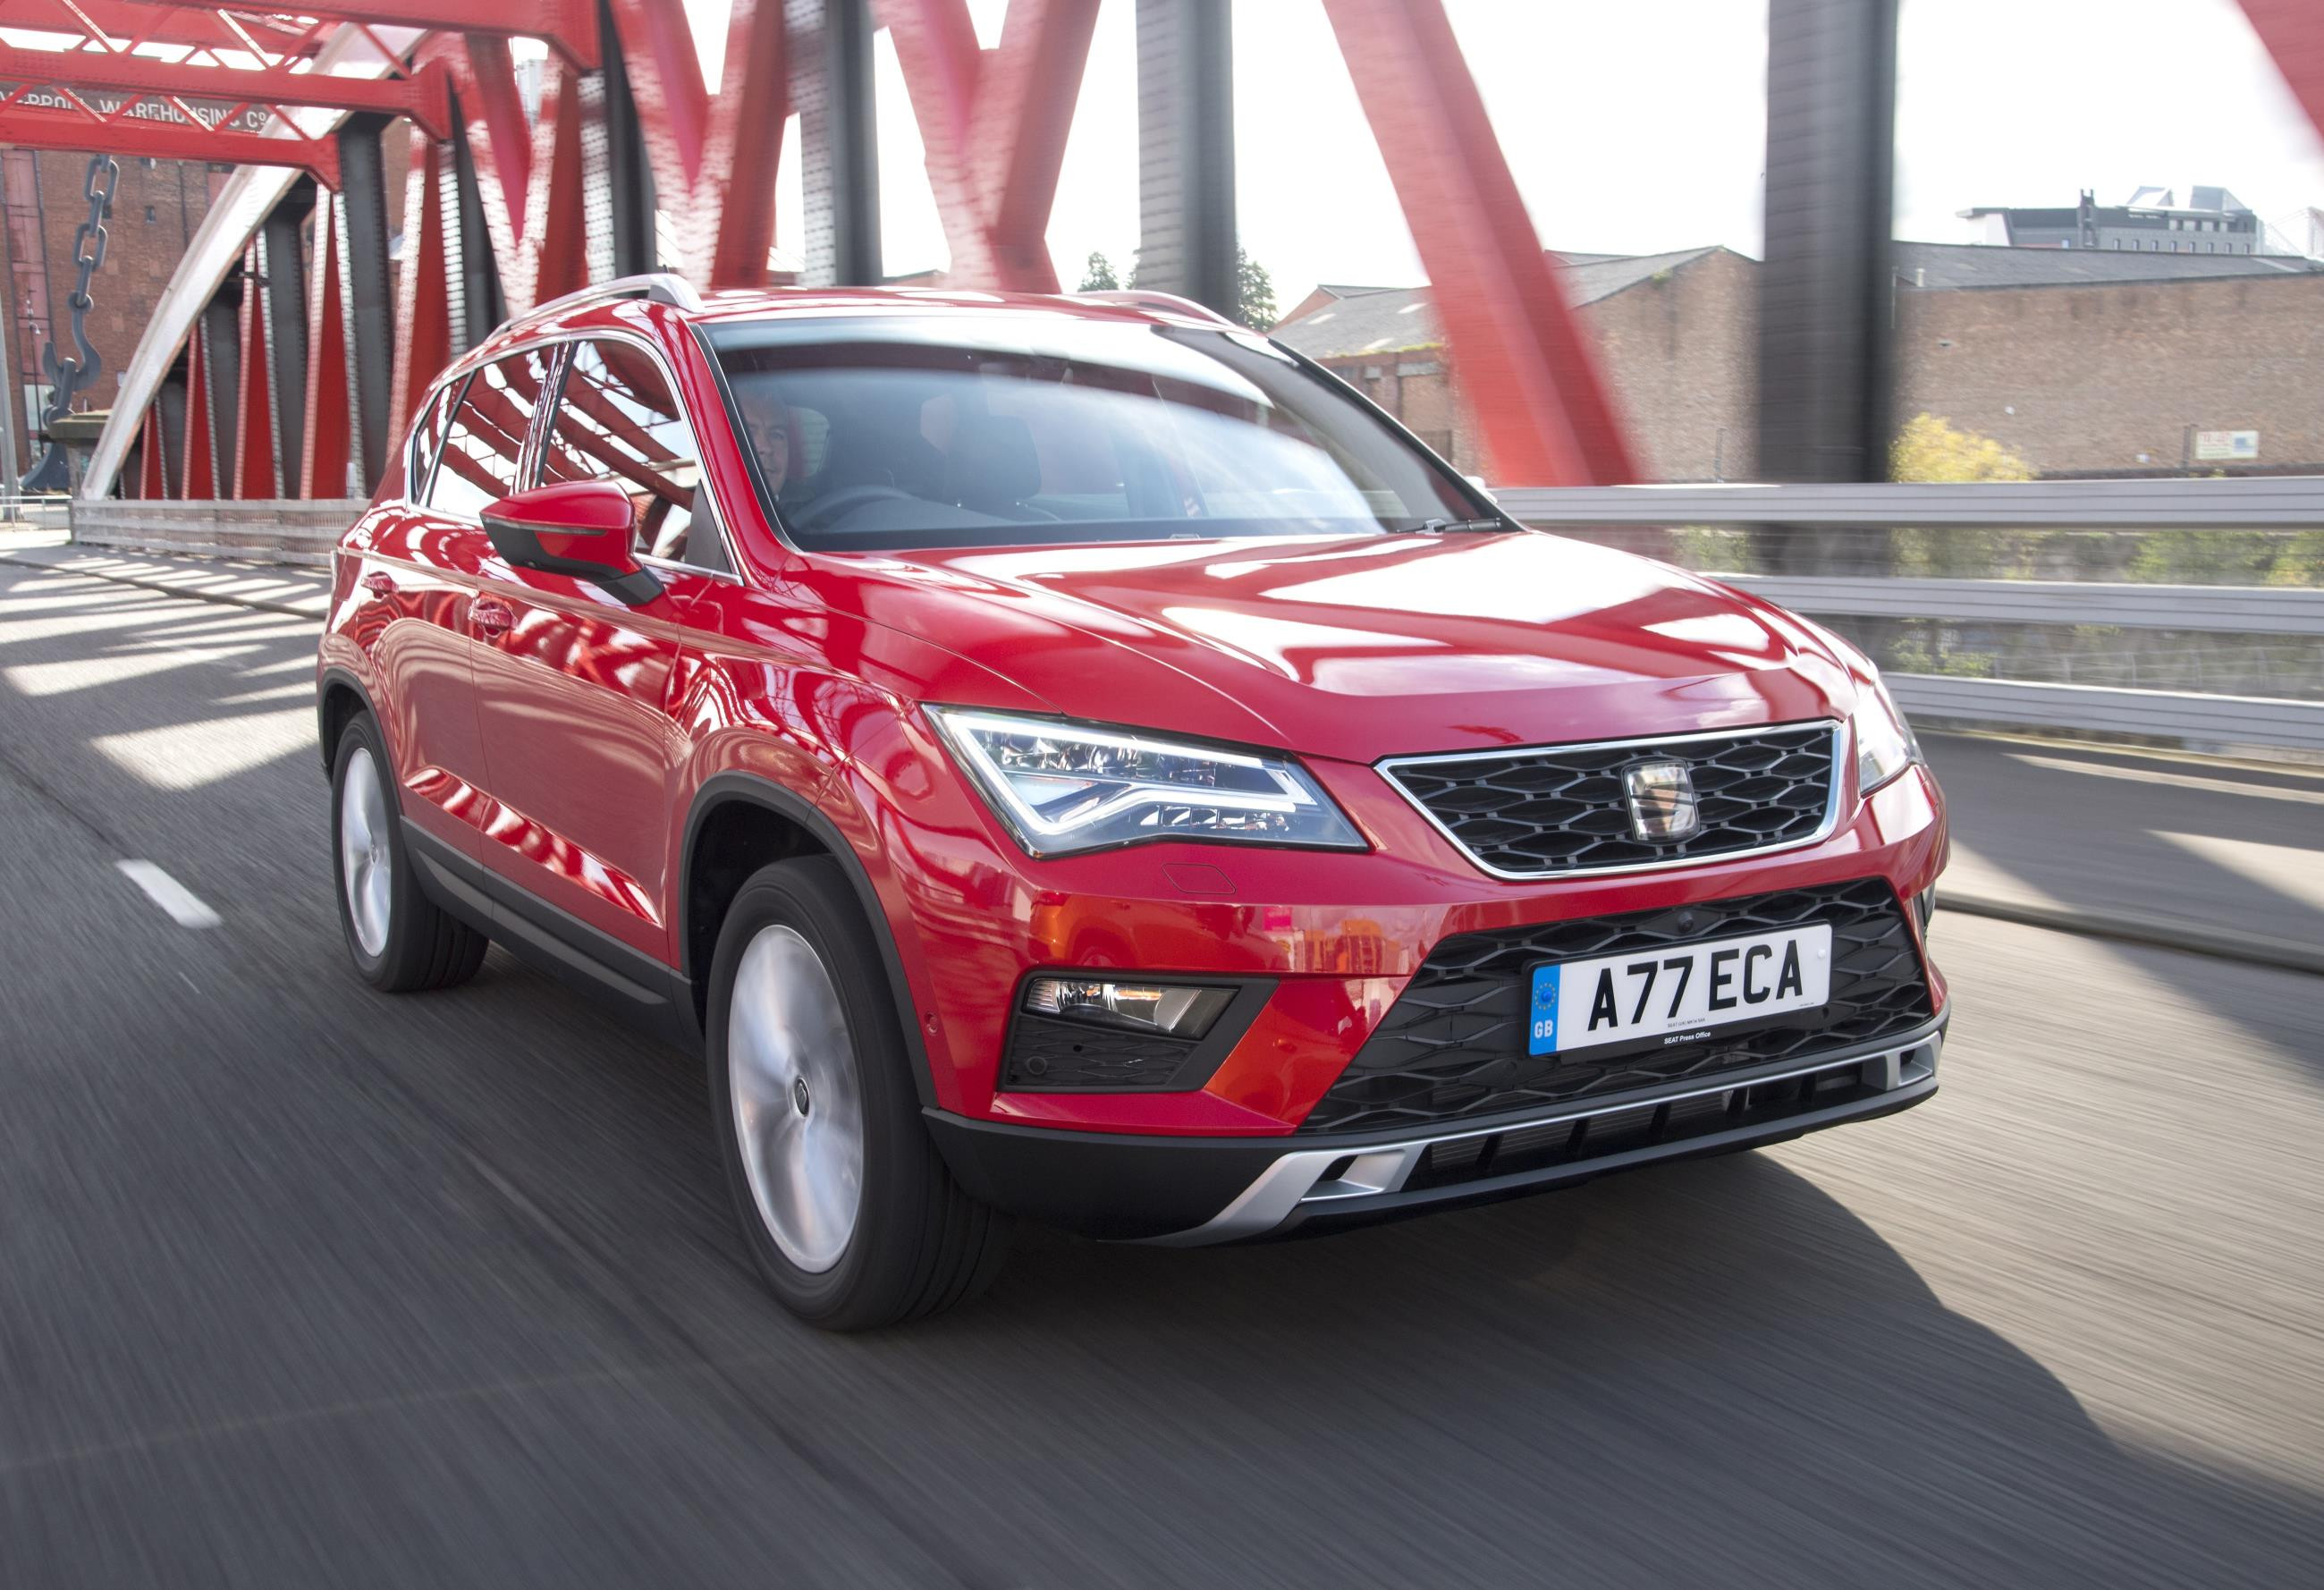 Red SEAT Ateca driving over a red suspension bridge